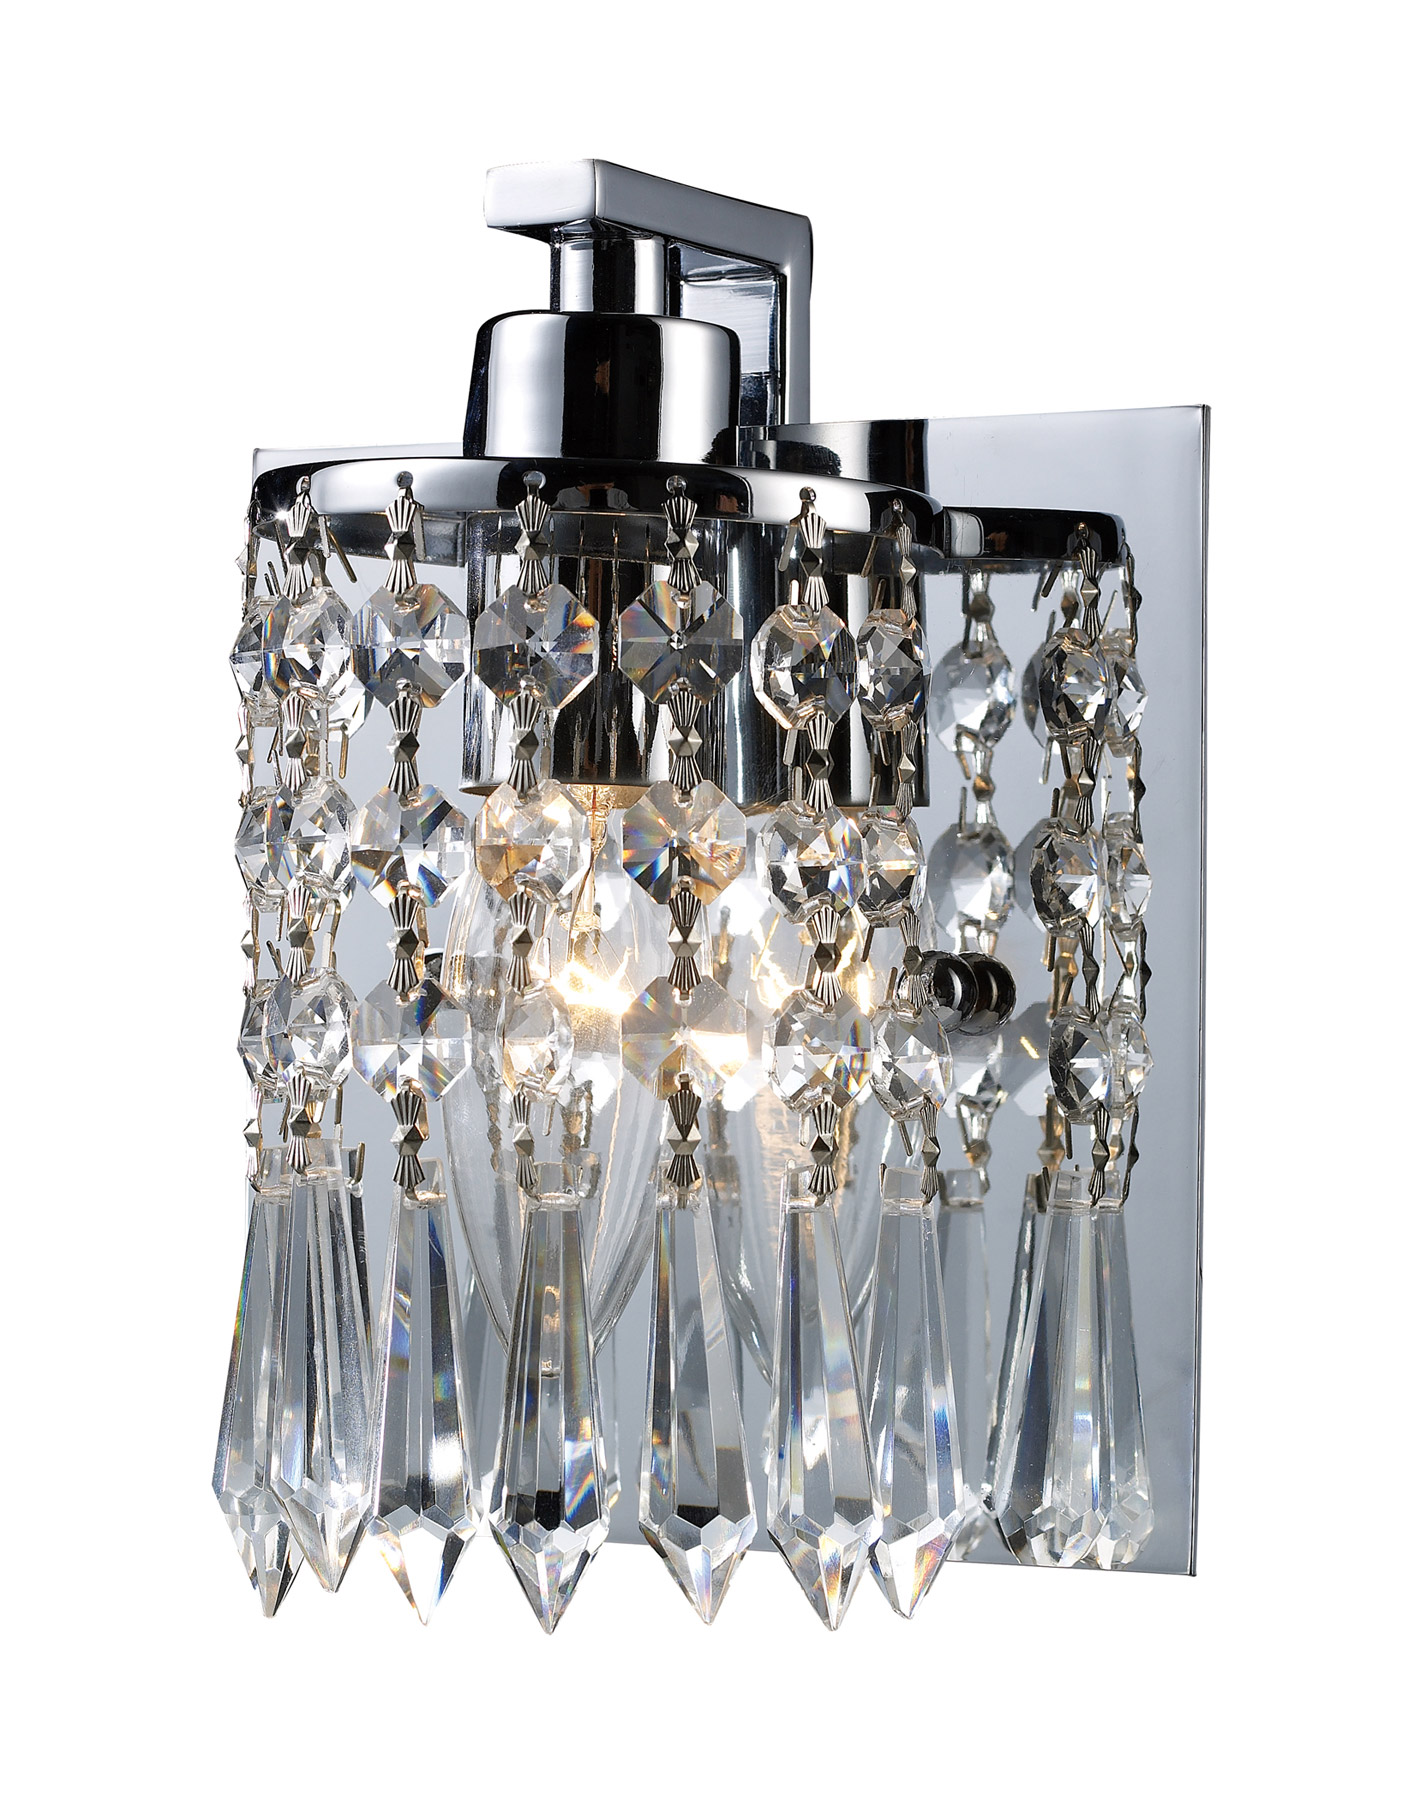 Crystal Wall Sconces Bathroom : Elk Lighting 11228/1 Crystal Optix Wall Sconce